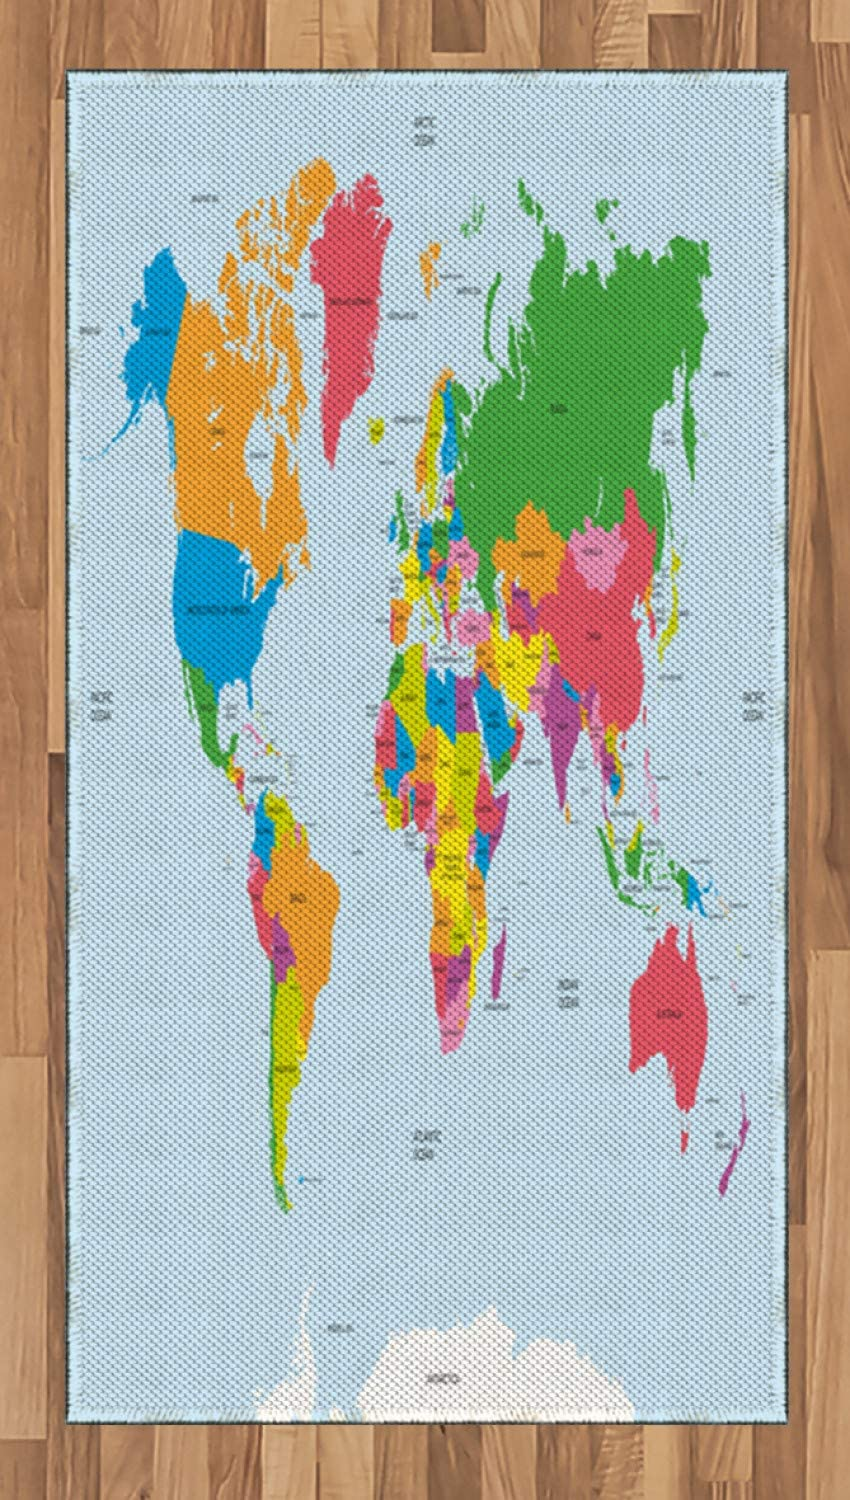 Ambesonne Map Area Rug, Classical Colorful Map of World in Political Style Travel Europe America Asia Africa, Flat Woven Accent Rug for Living Room Bedroom Dining Room, 2.6 x 5 FT, Multicolor